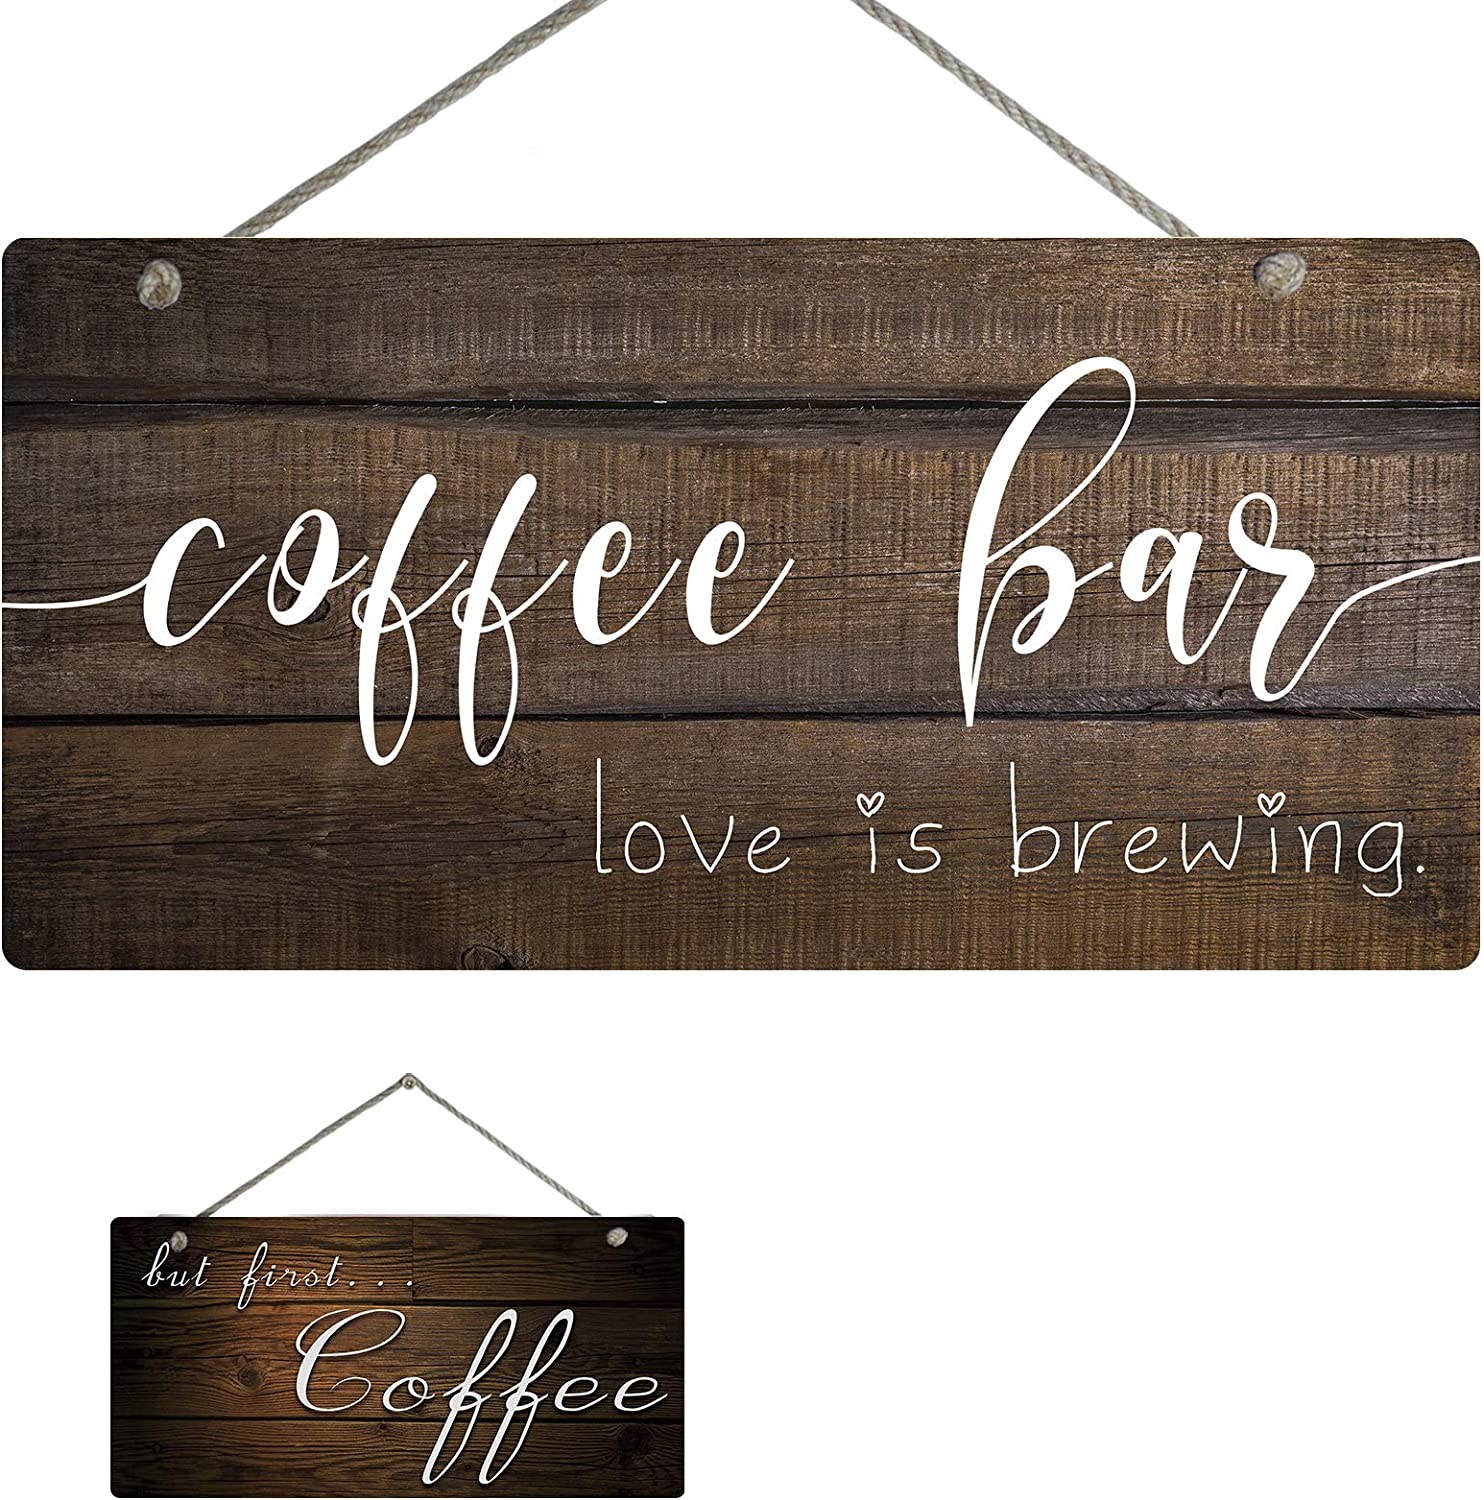 """YINUOWEI Coffee Bar Wall Decor Wood Pattern Plaque Sign, Double Sides Printed, Rustic Hanging Wall Art Sign - Coffee bar Love is Brewing/but First. Coffee, 12""""x6"""""""